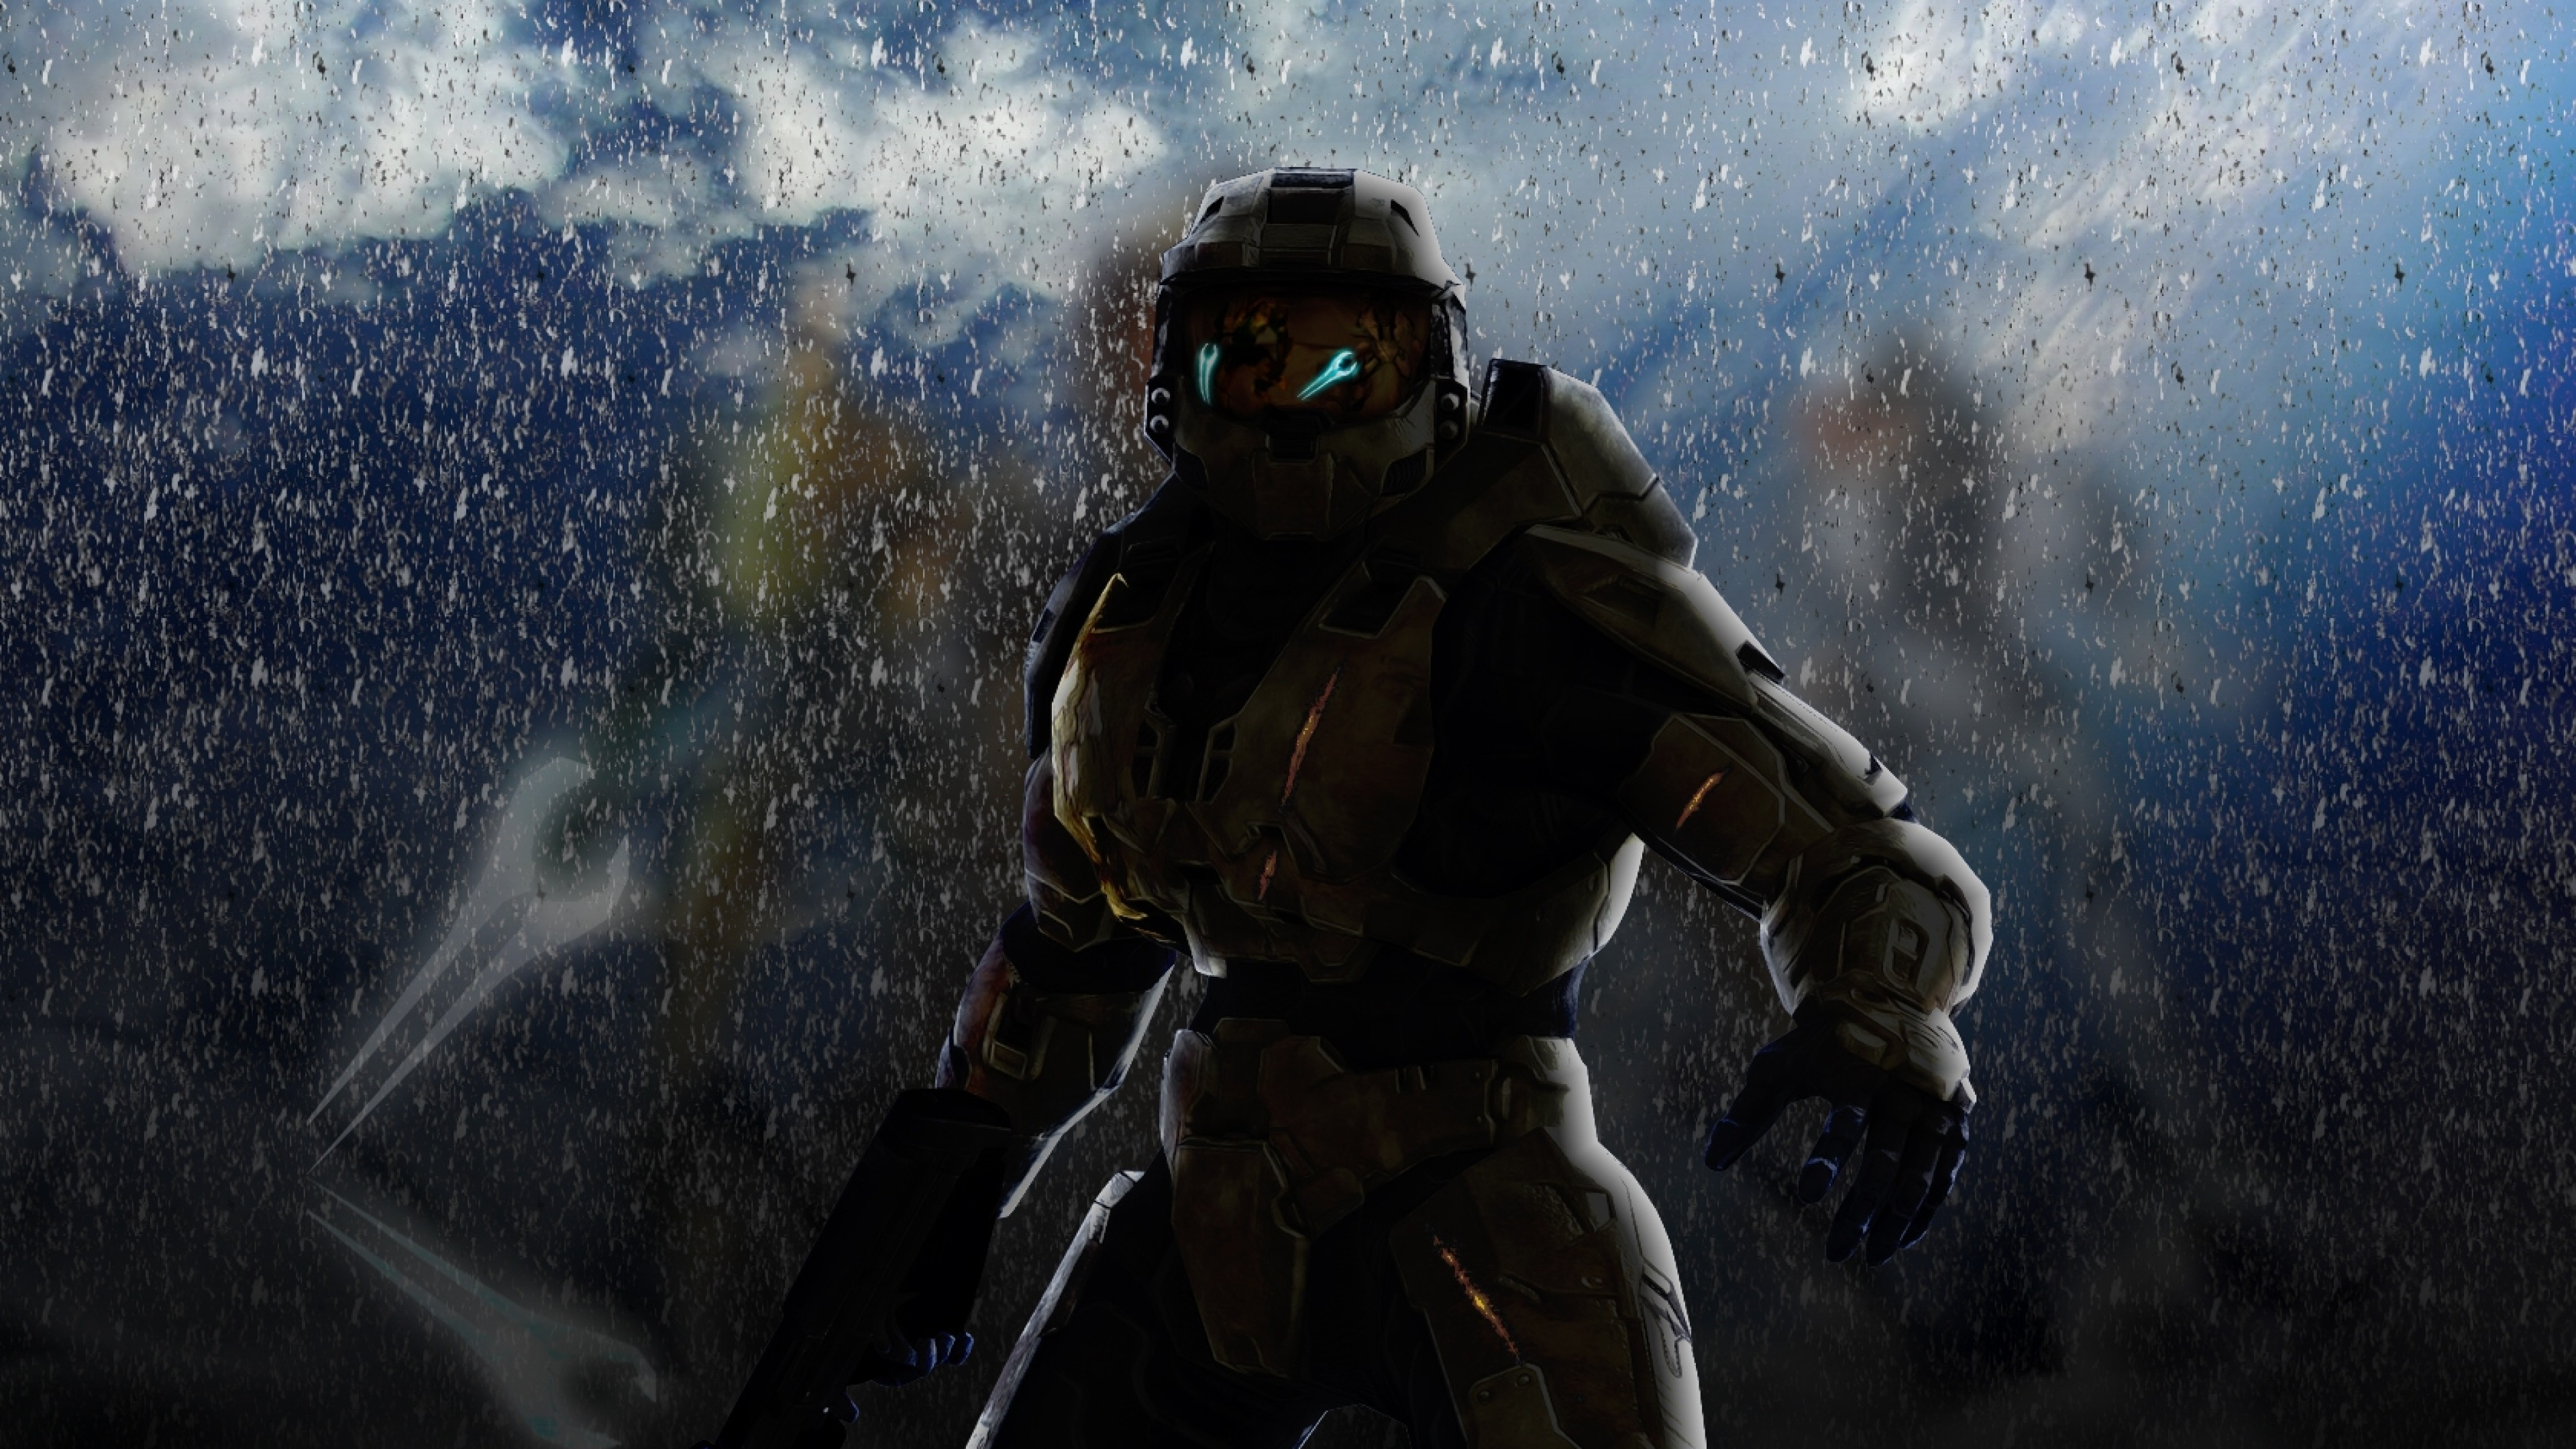 3840x2160 Preview Wallpaper Halo Soldier Armor Look